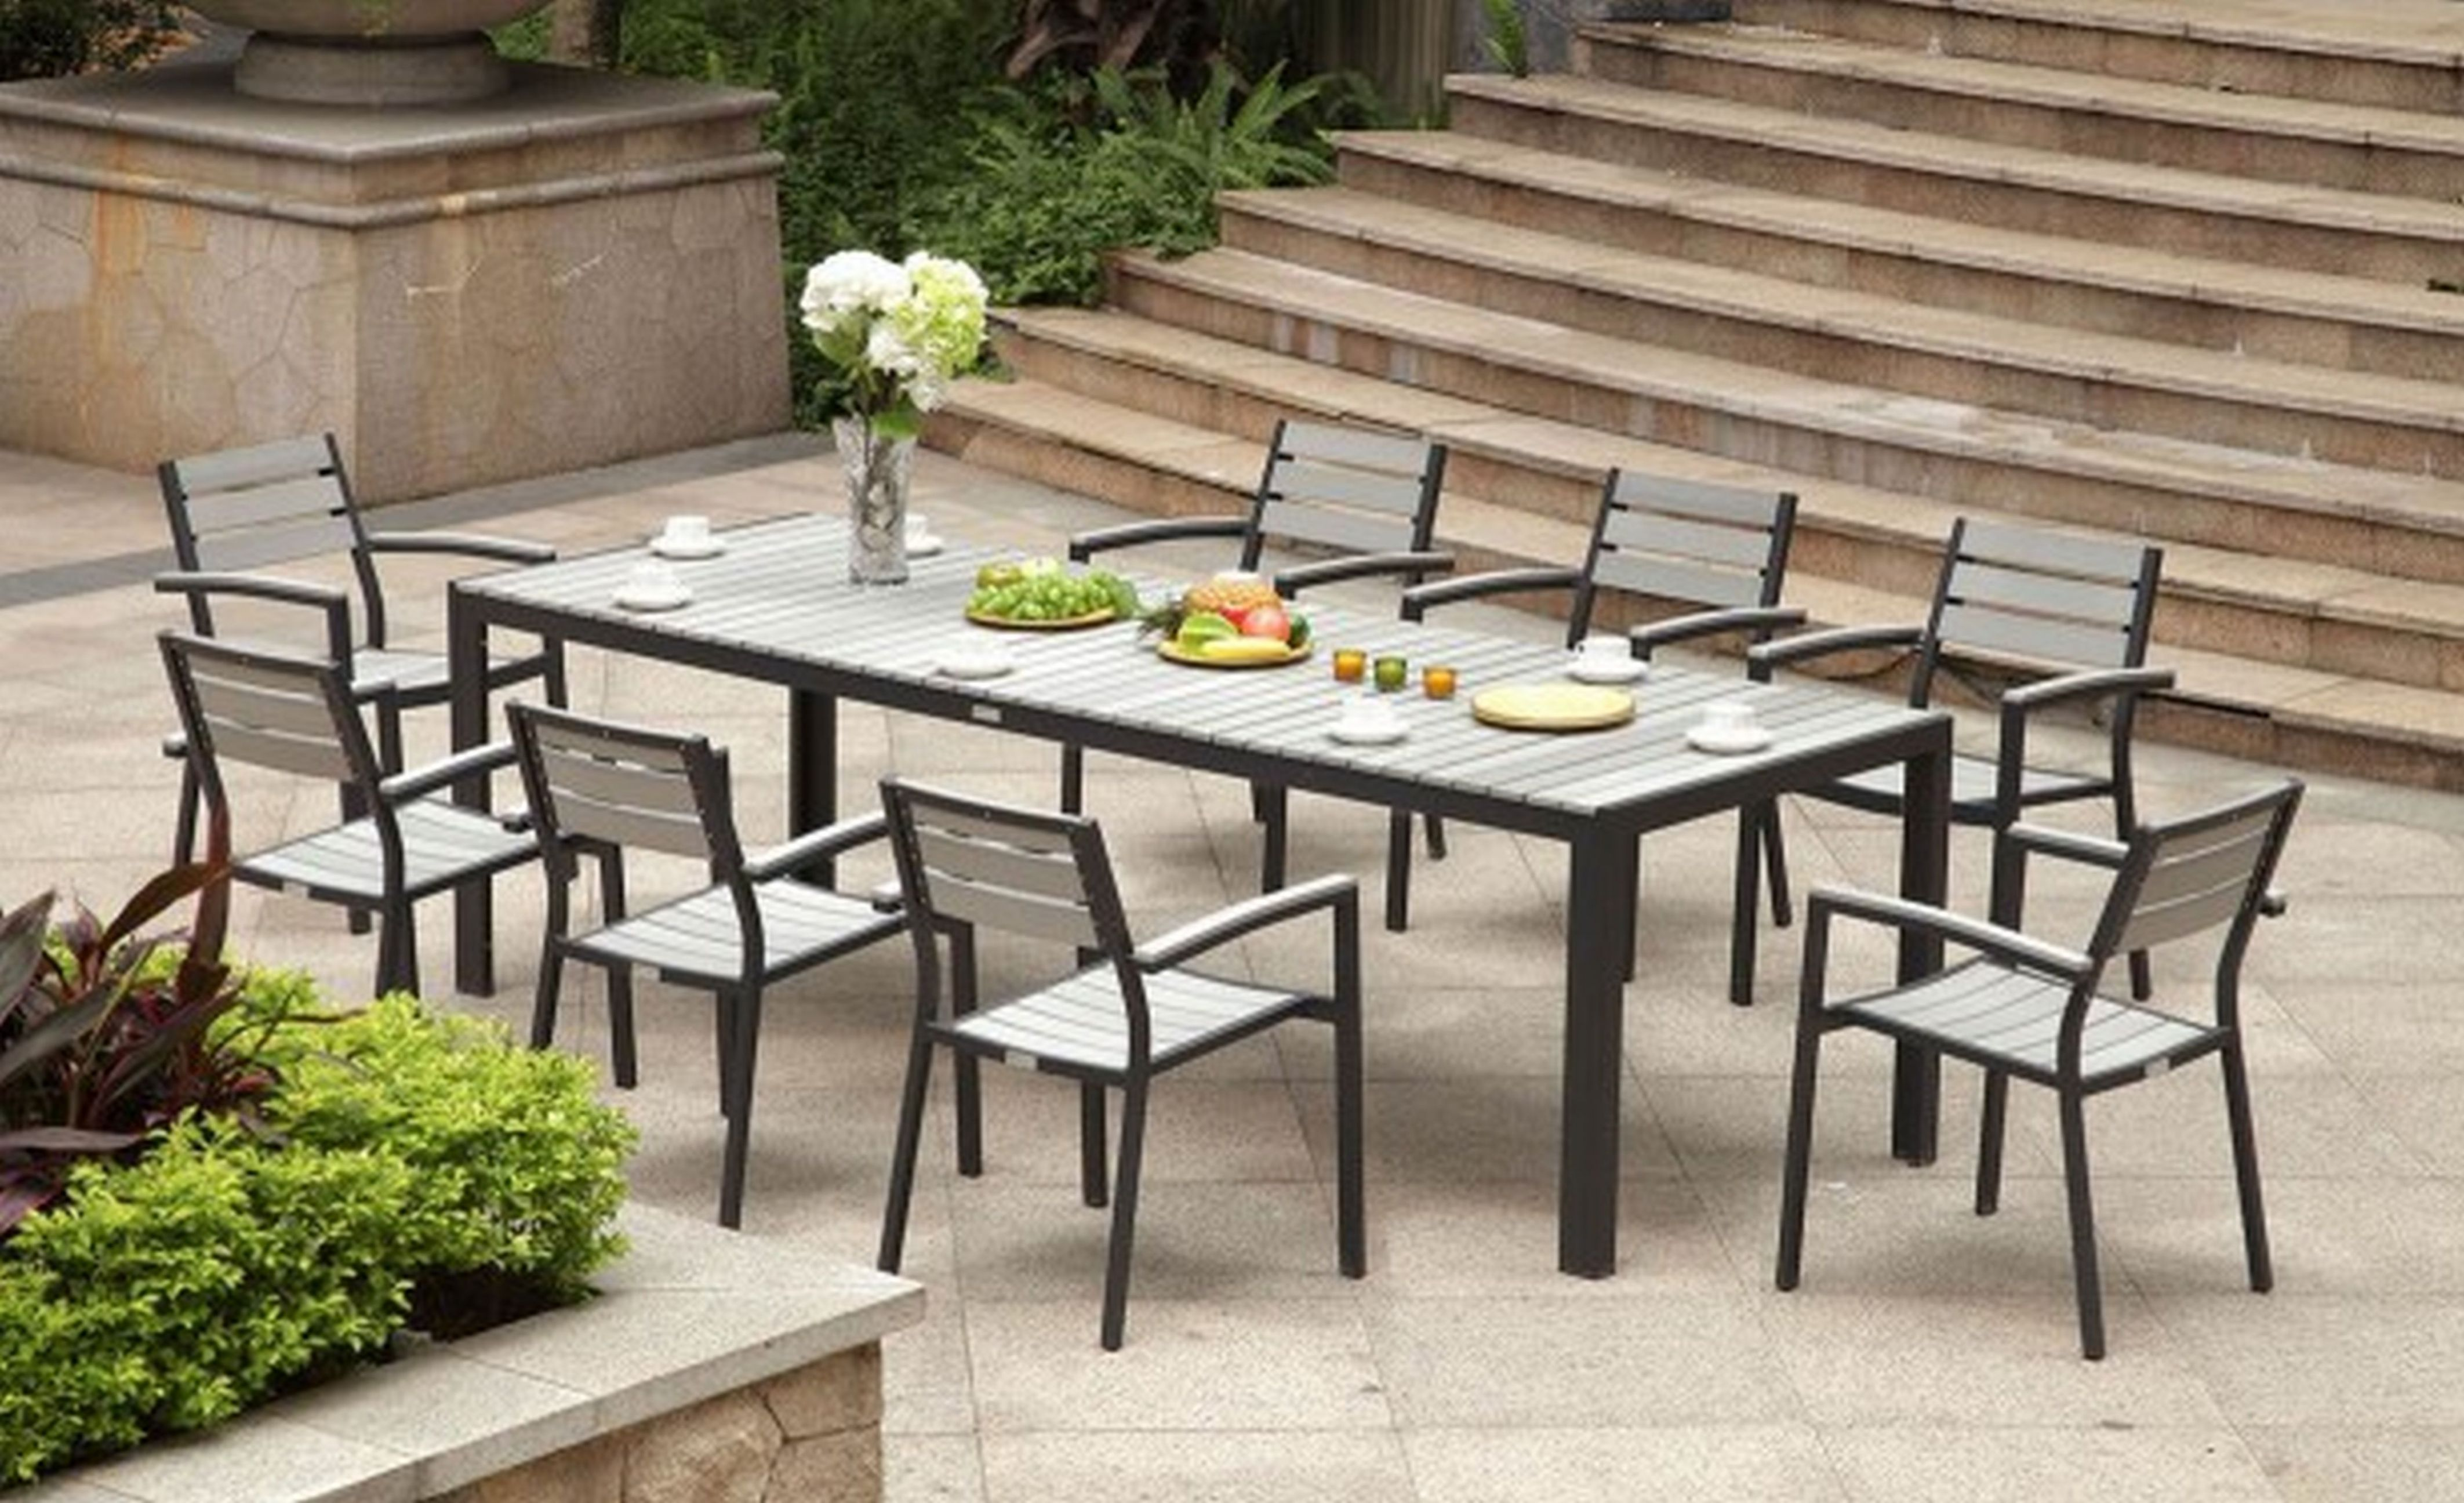 Amazing Aluminum Outdoor Furniture By Kettal With Large Black Dining Table Chair Stool And Flower Dec